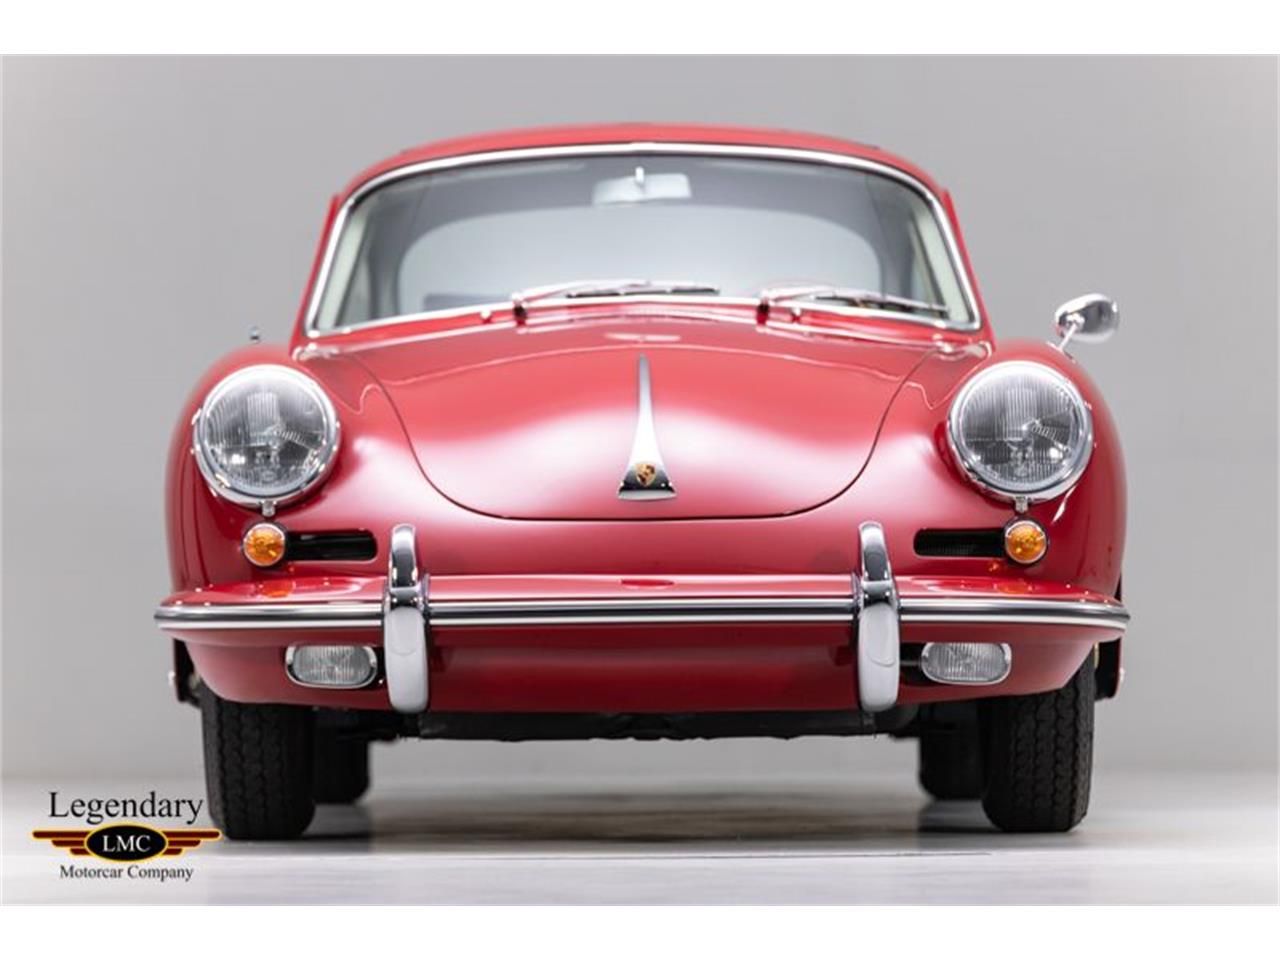 1962 Porsche Carrera (CC-1265859) for sale in Halton Hills, Ontario